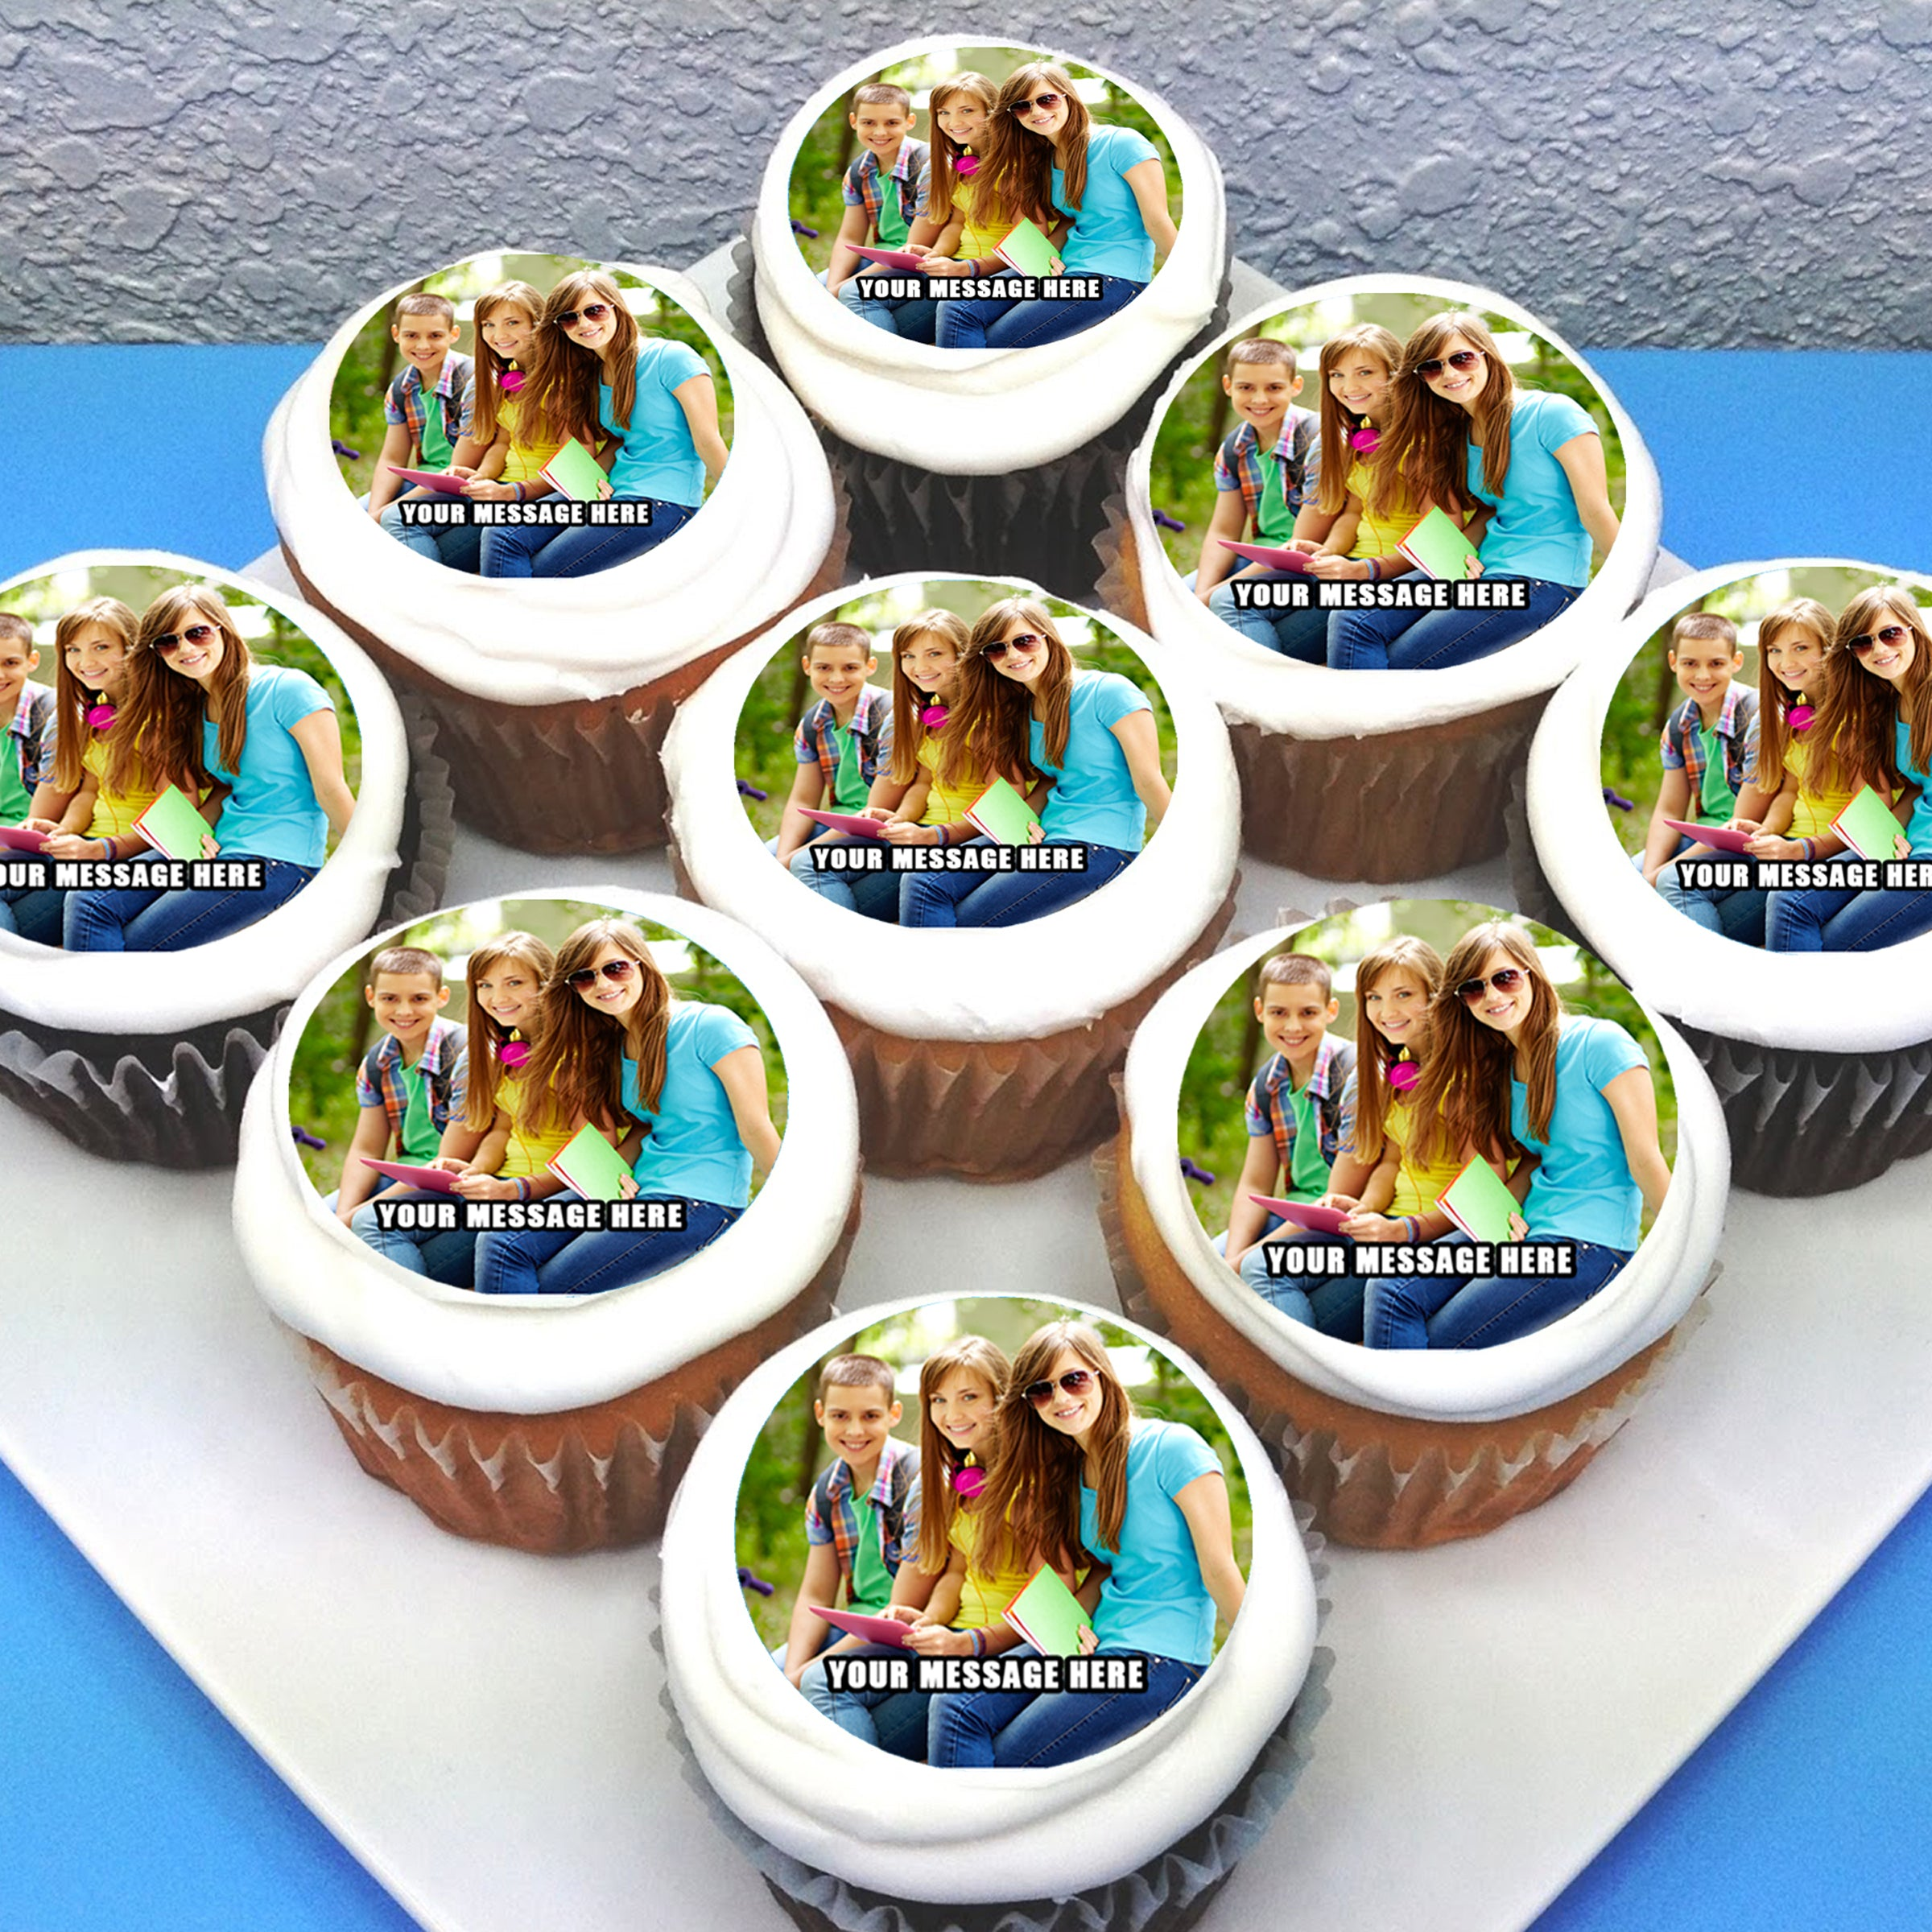 YOUR OWN PERSONALISED PHOTO EDIBLE CUPCAKE TOPPER PICTURE ON A CUPCAKE